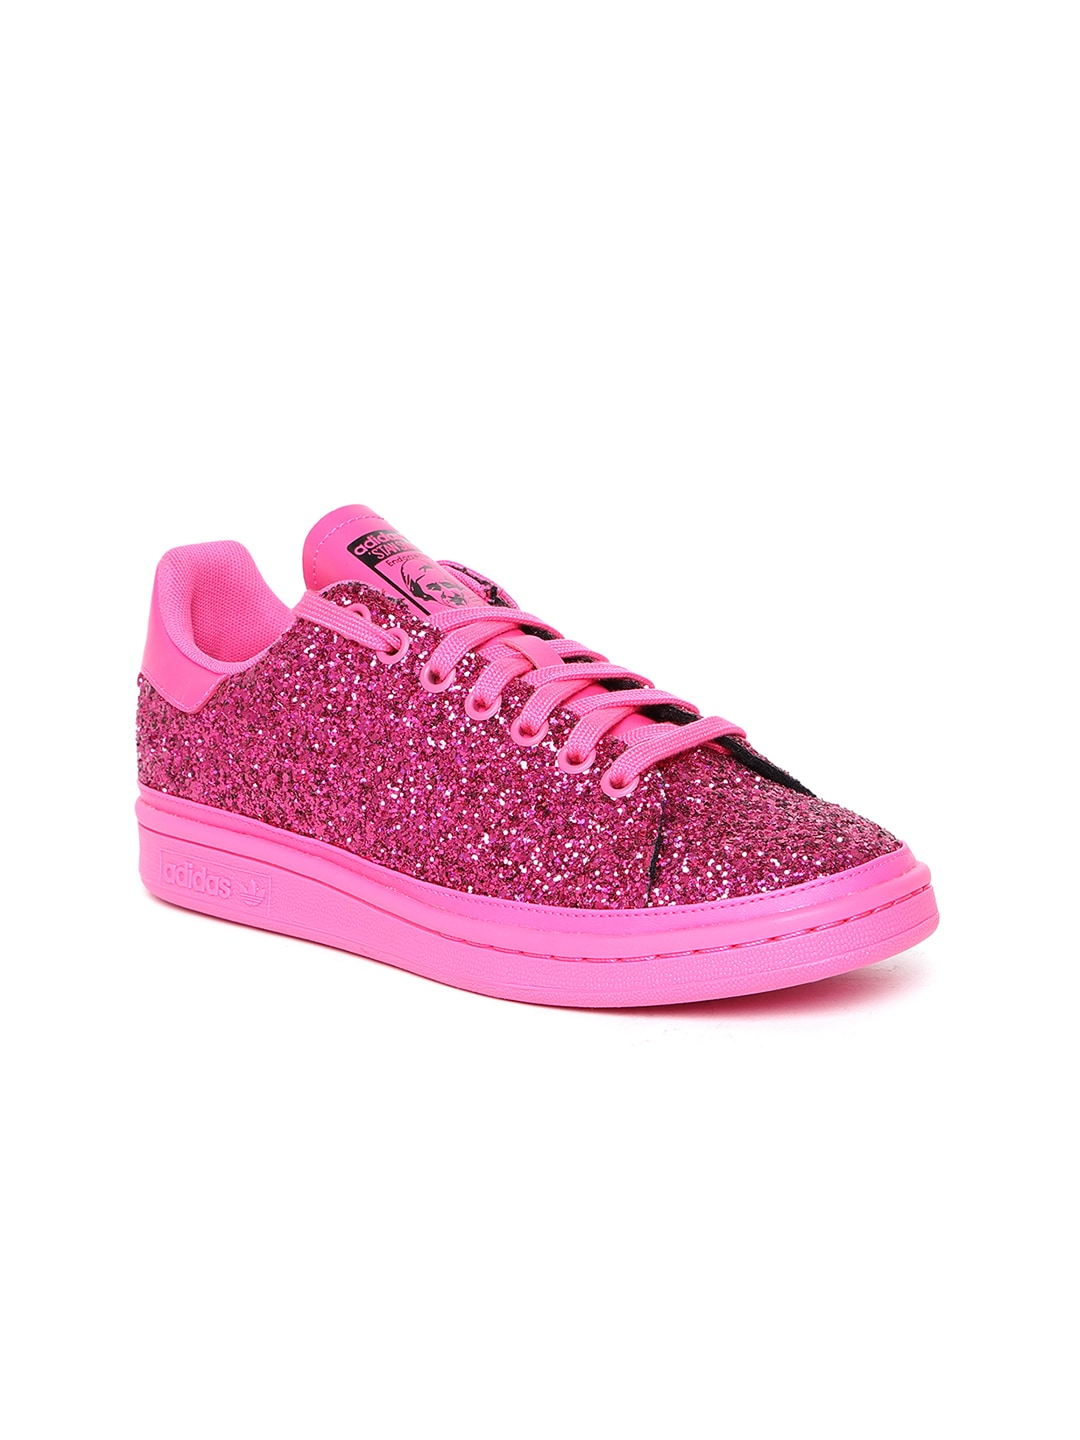 193ae6b02912 Adidas Pink Shoes - Buy Adidas Pink Shoes online in India